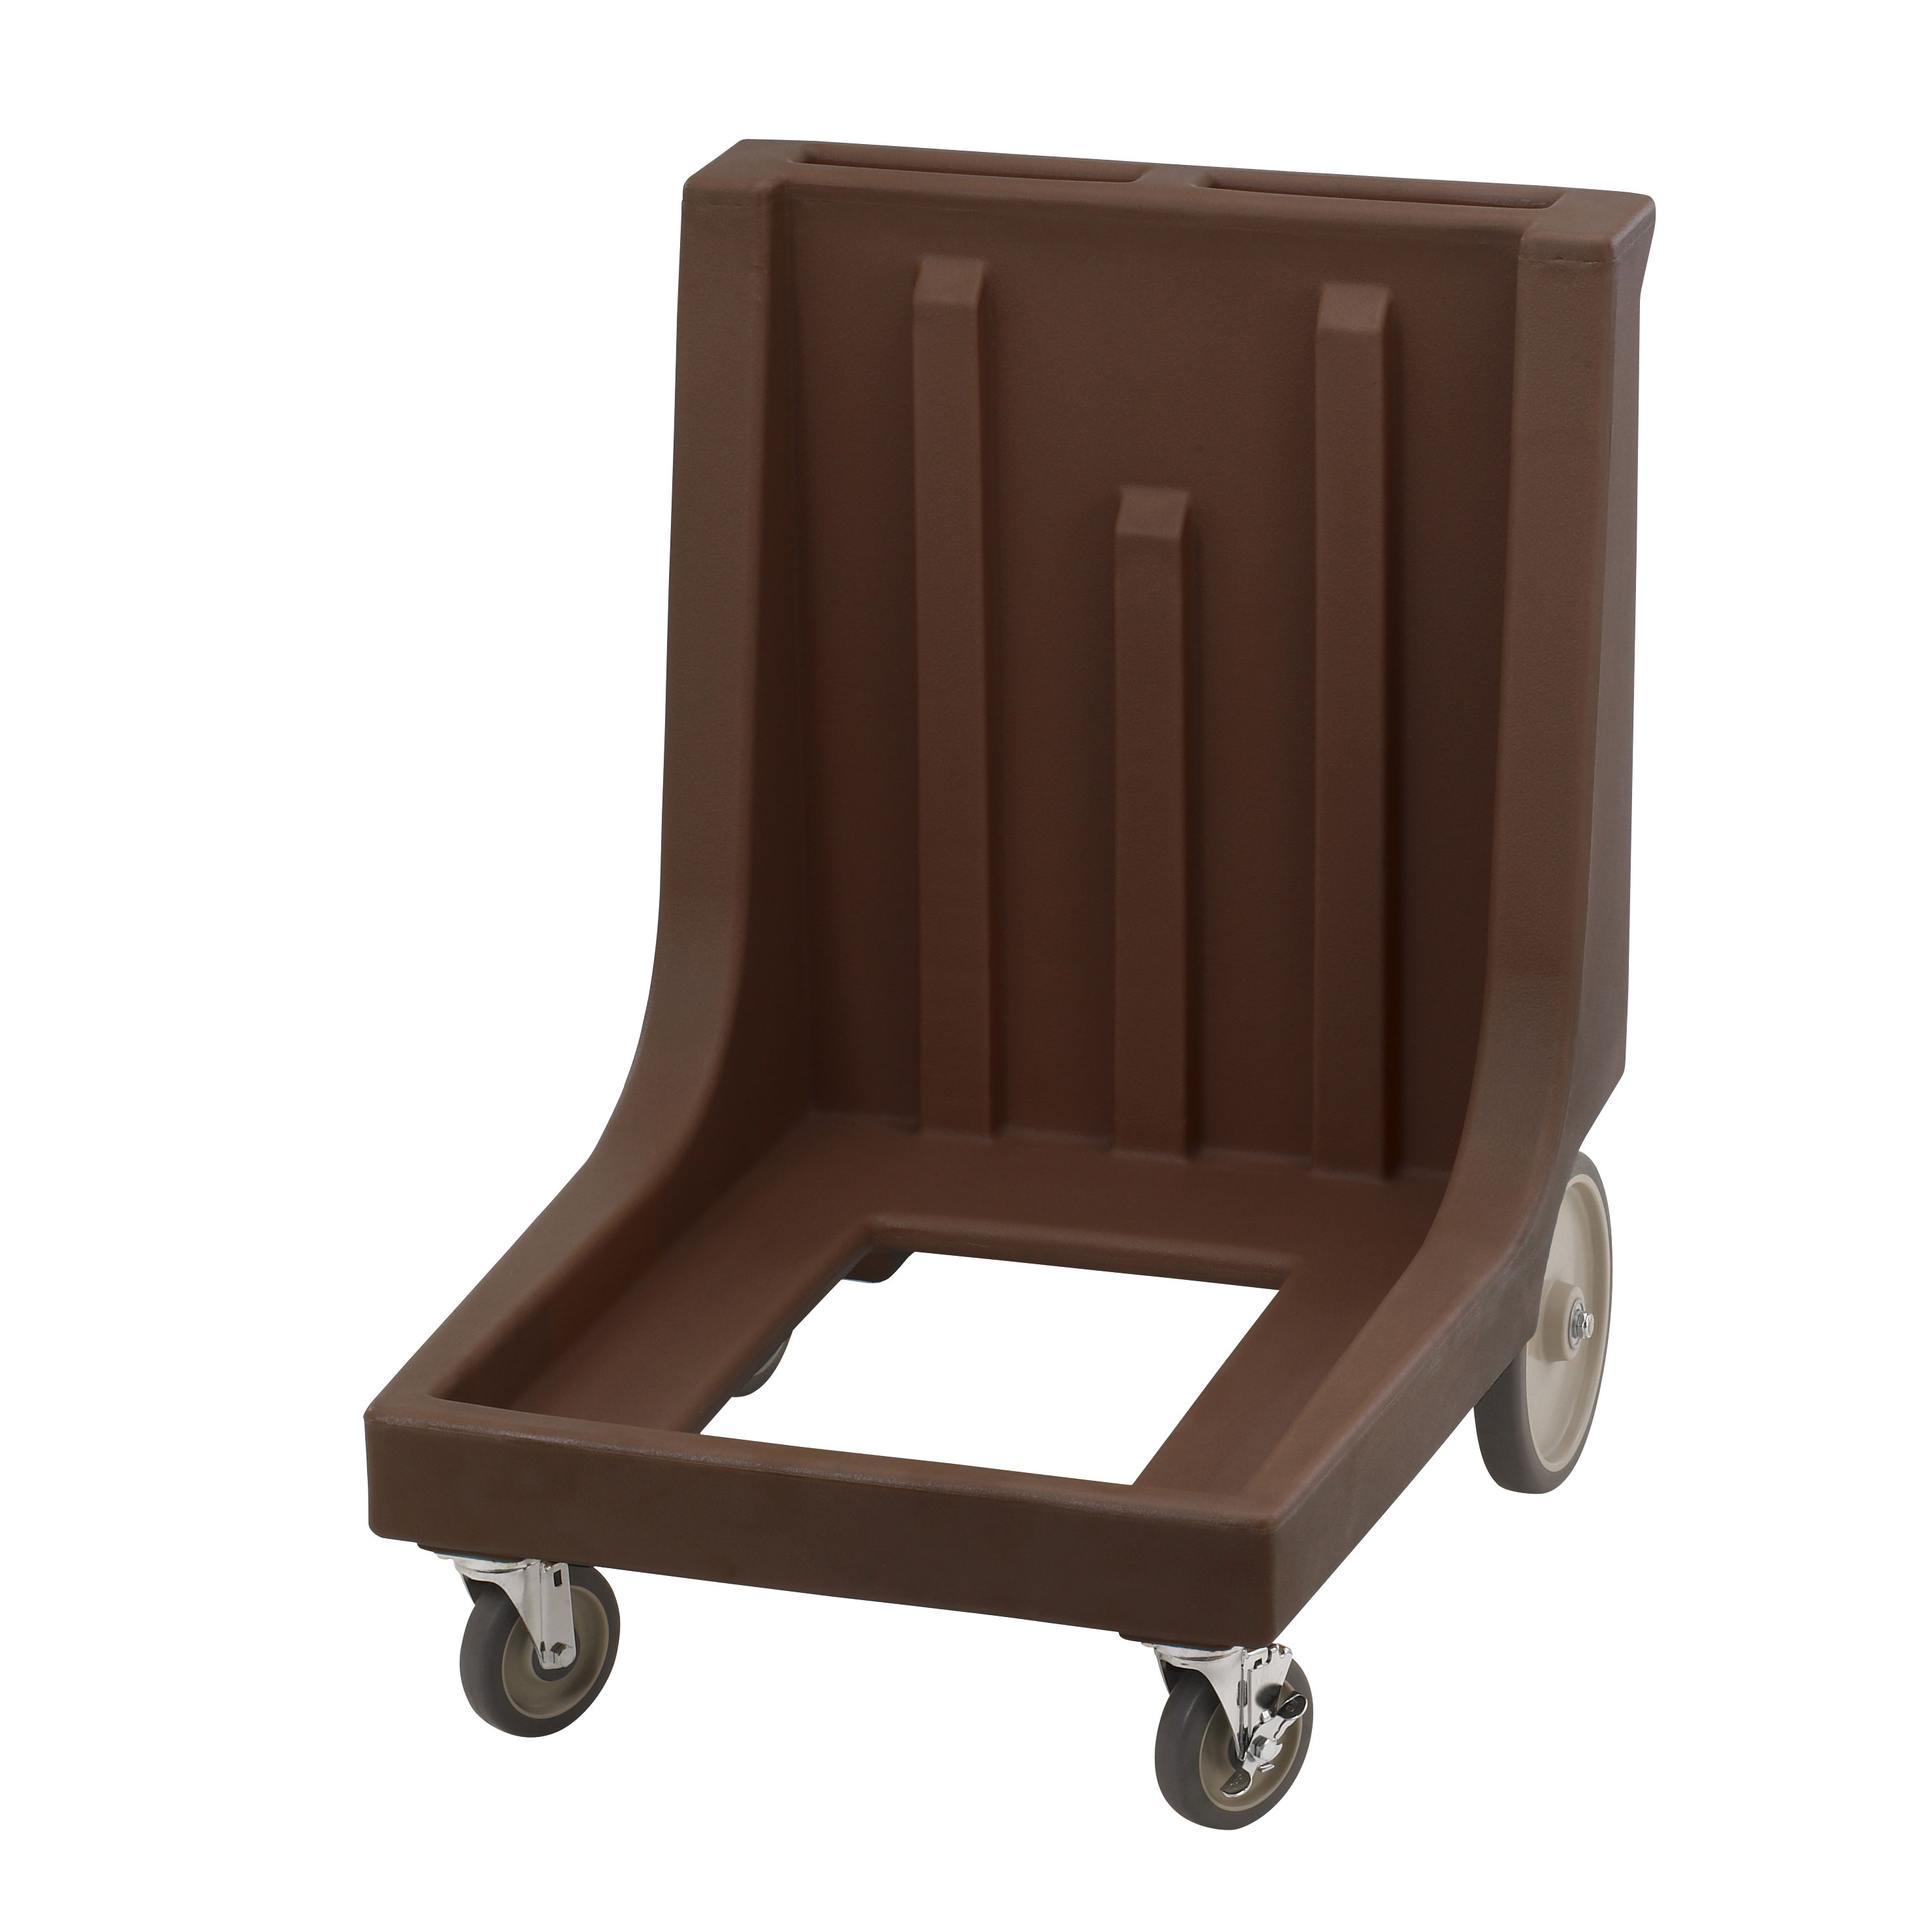 Cambro CD1826MTCHB131 food carrier dolly